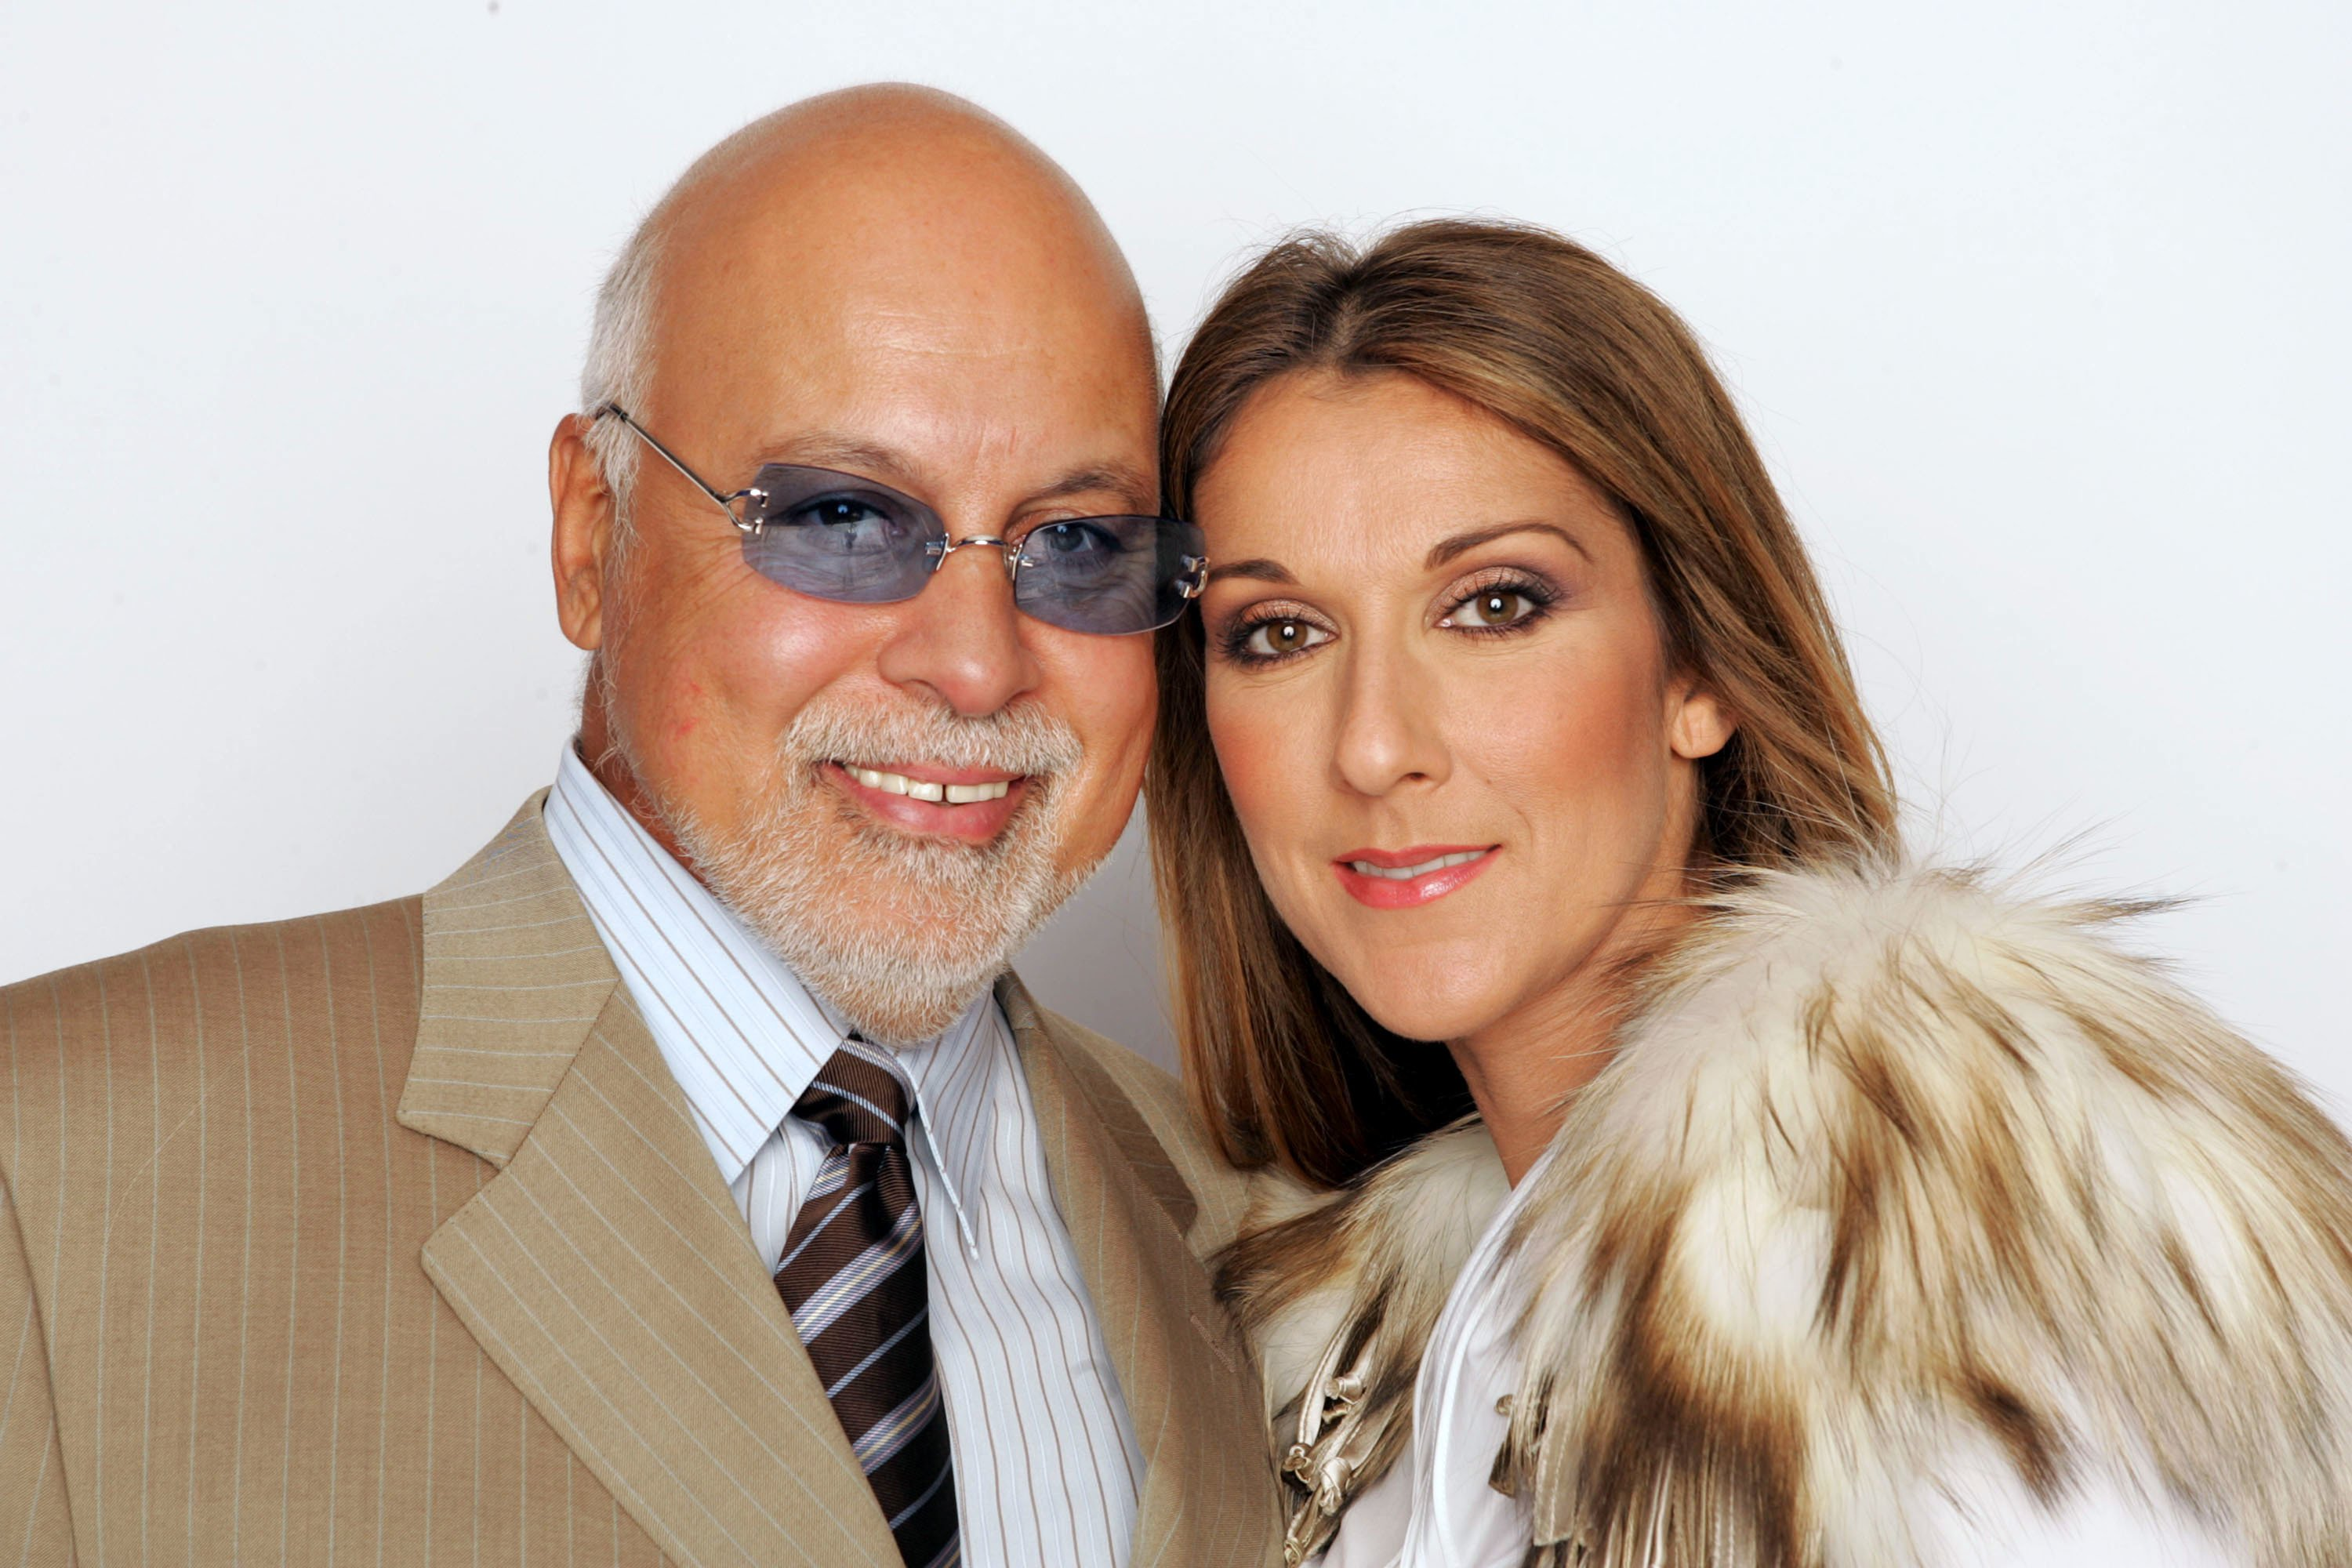 Celine Dion and Rene Angelil at the 2004 World Music Awards in Las Vegas | Source: Getty Images